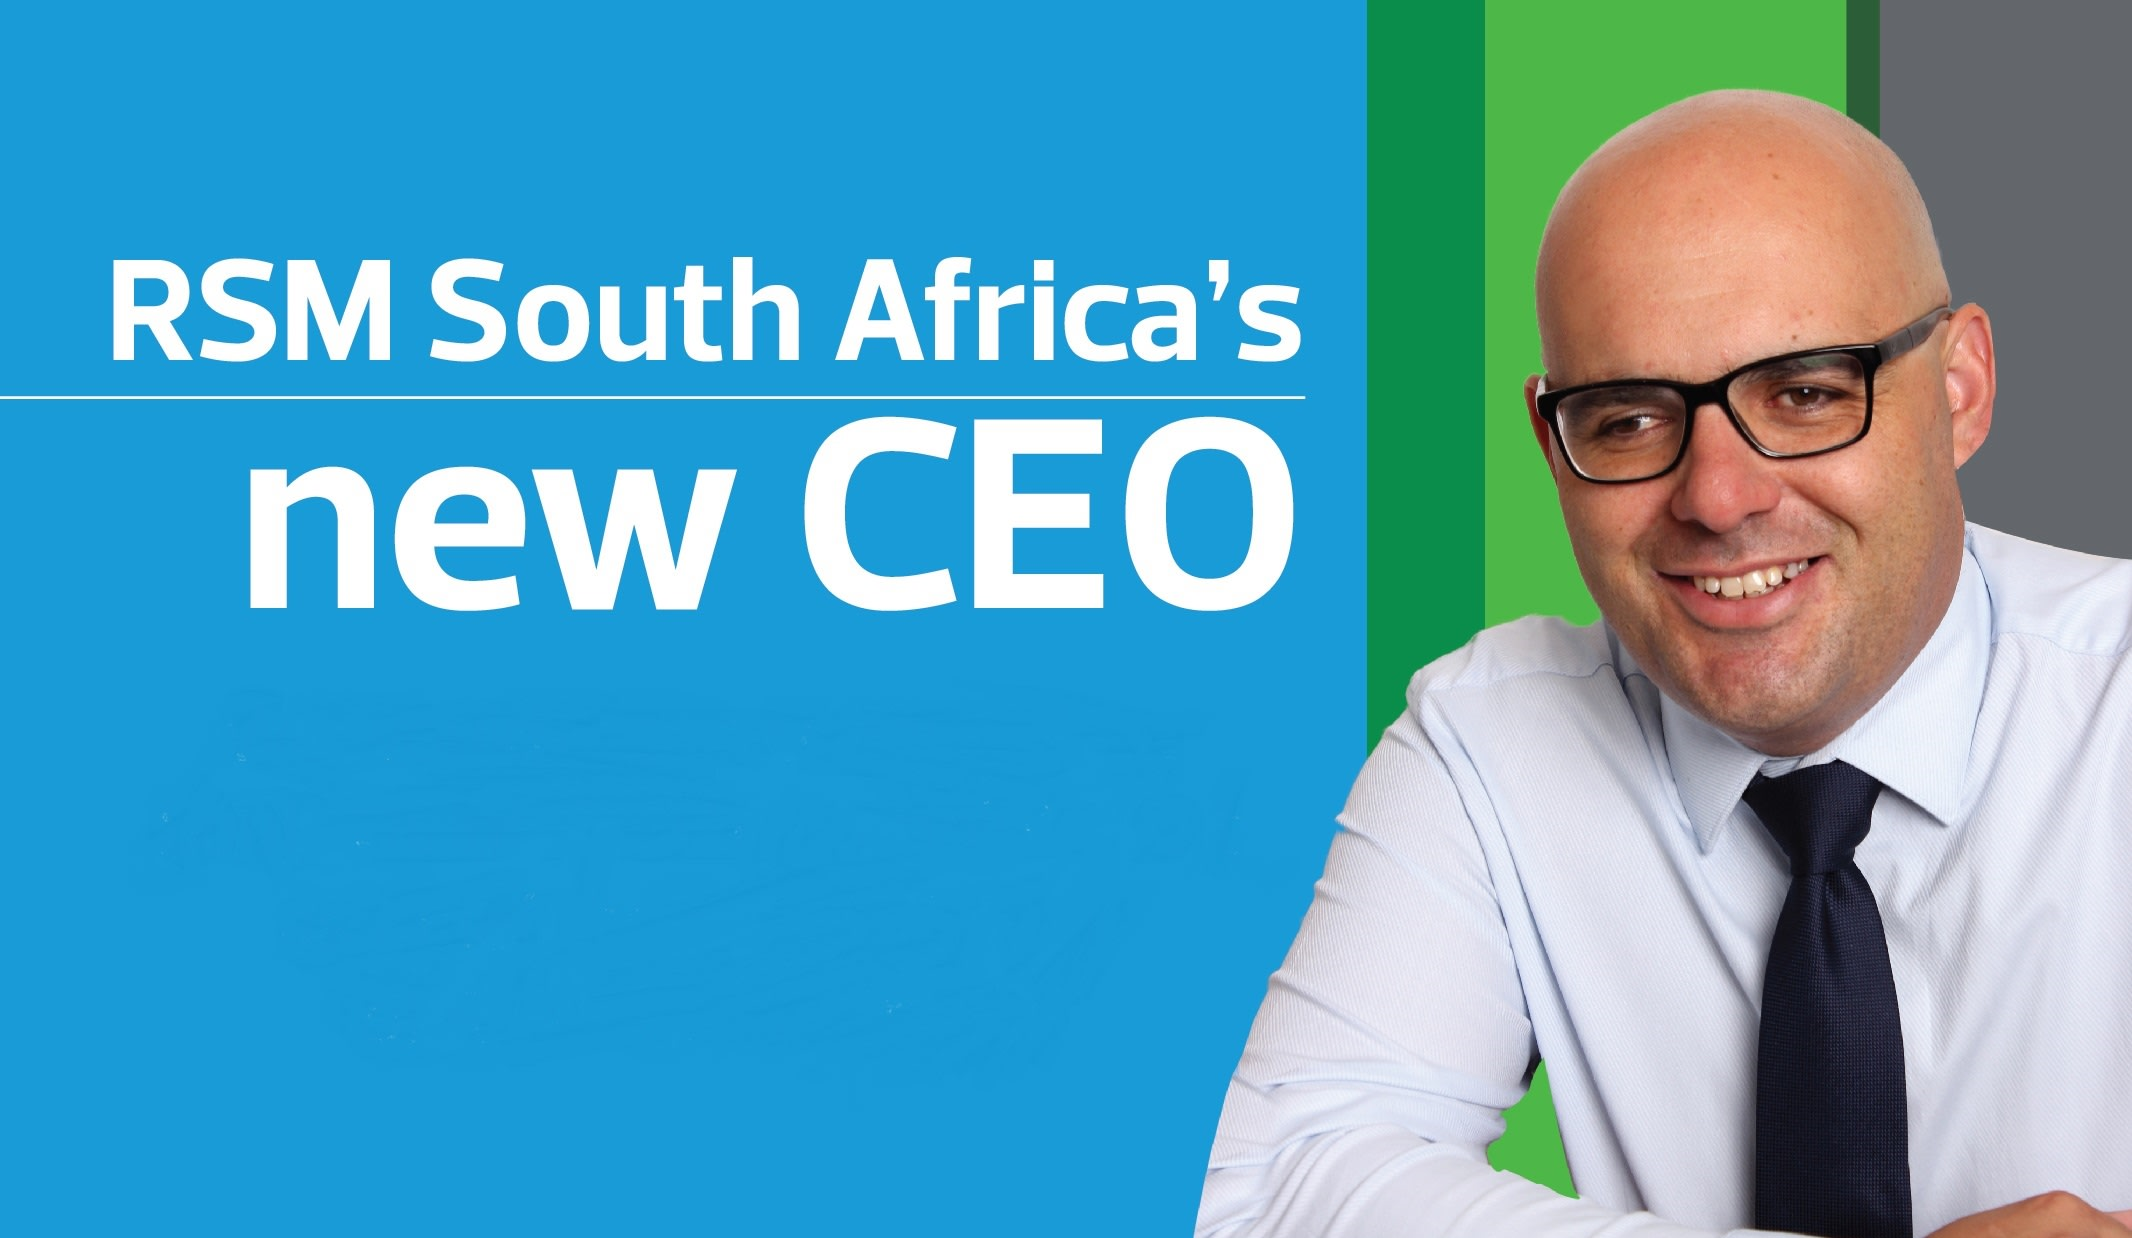 public://media/Article images/rsm_south_africa_new_ceo.jpg